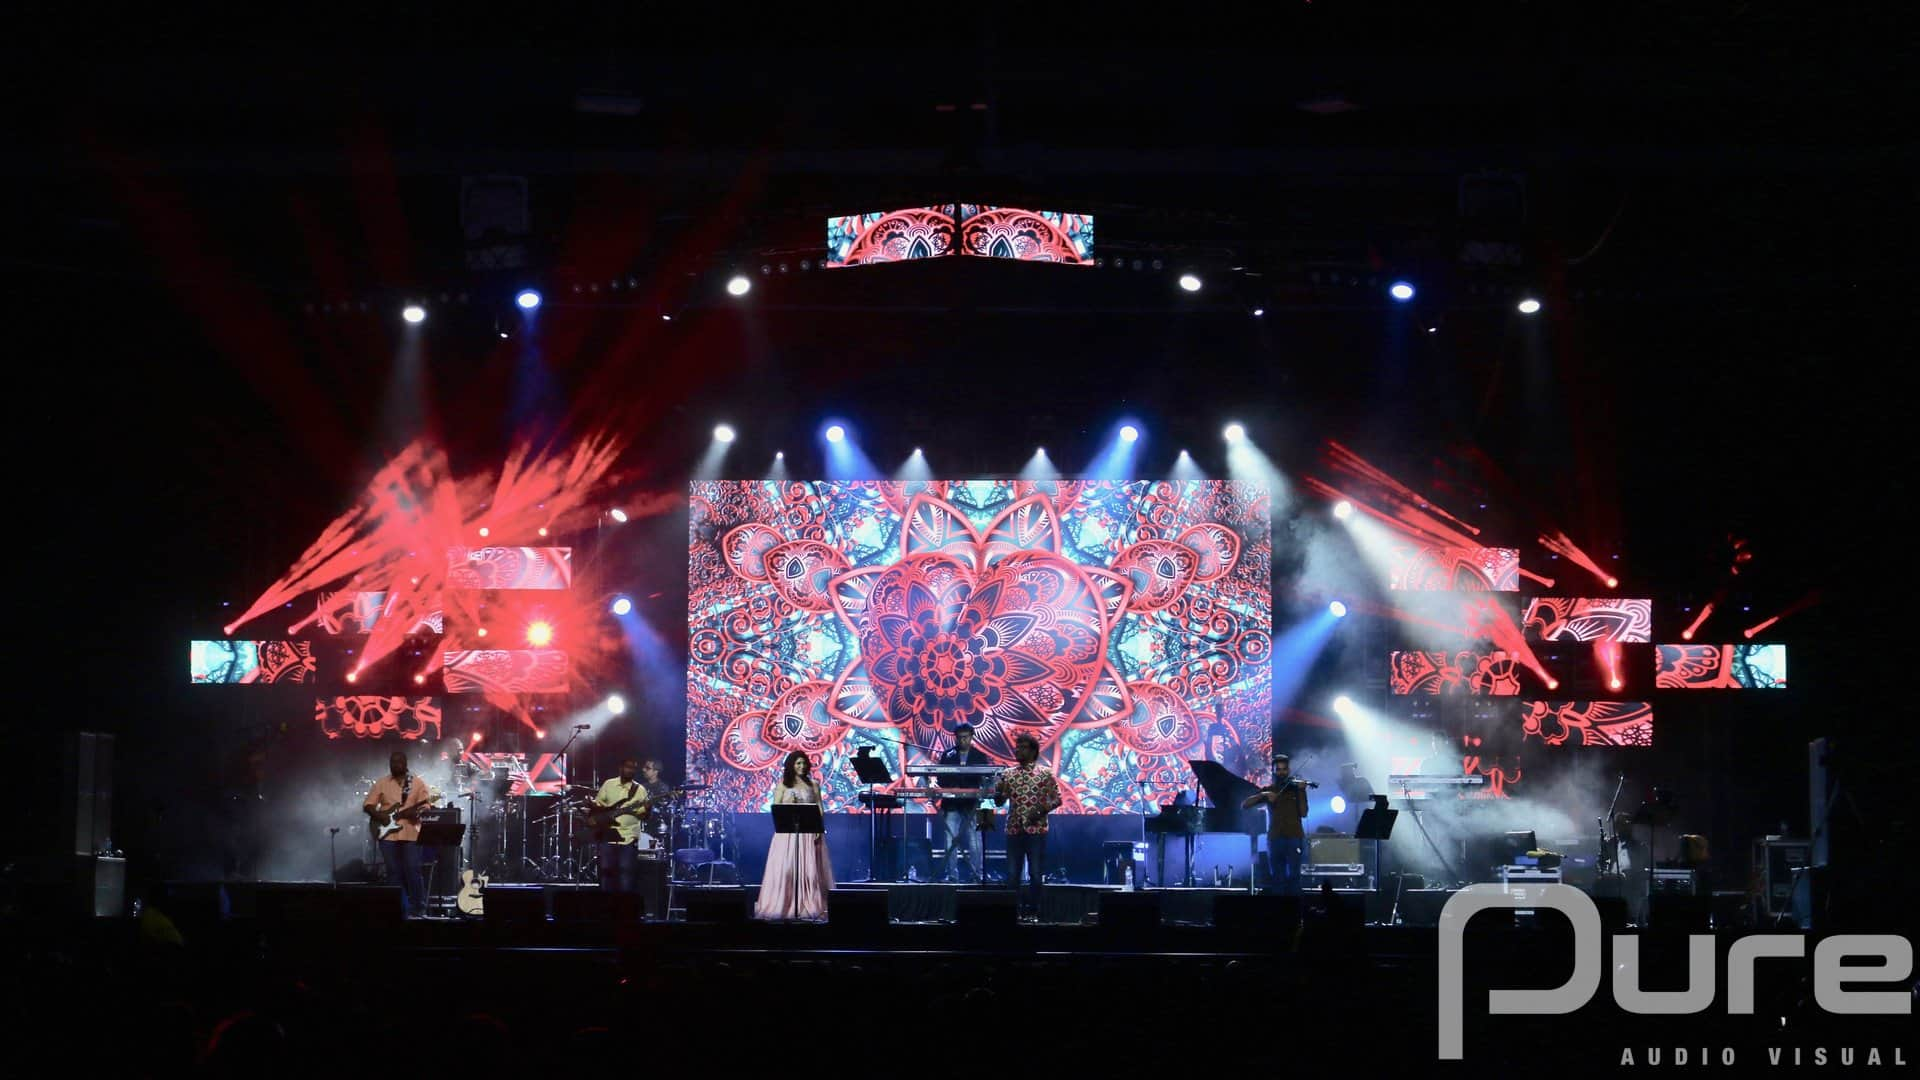 Toronto AV Company, Audio Visual, AV Gear, AV Company, Lighting, Speakers, LED Video Wall, Truss, Projectors, Screens